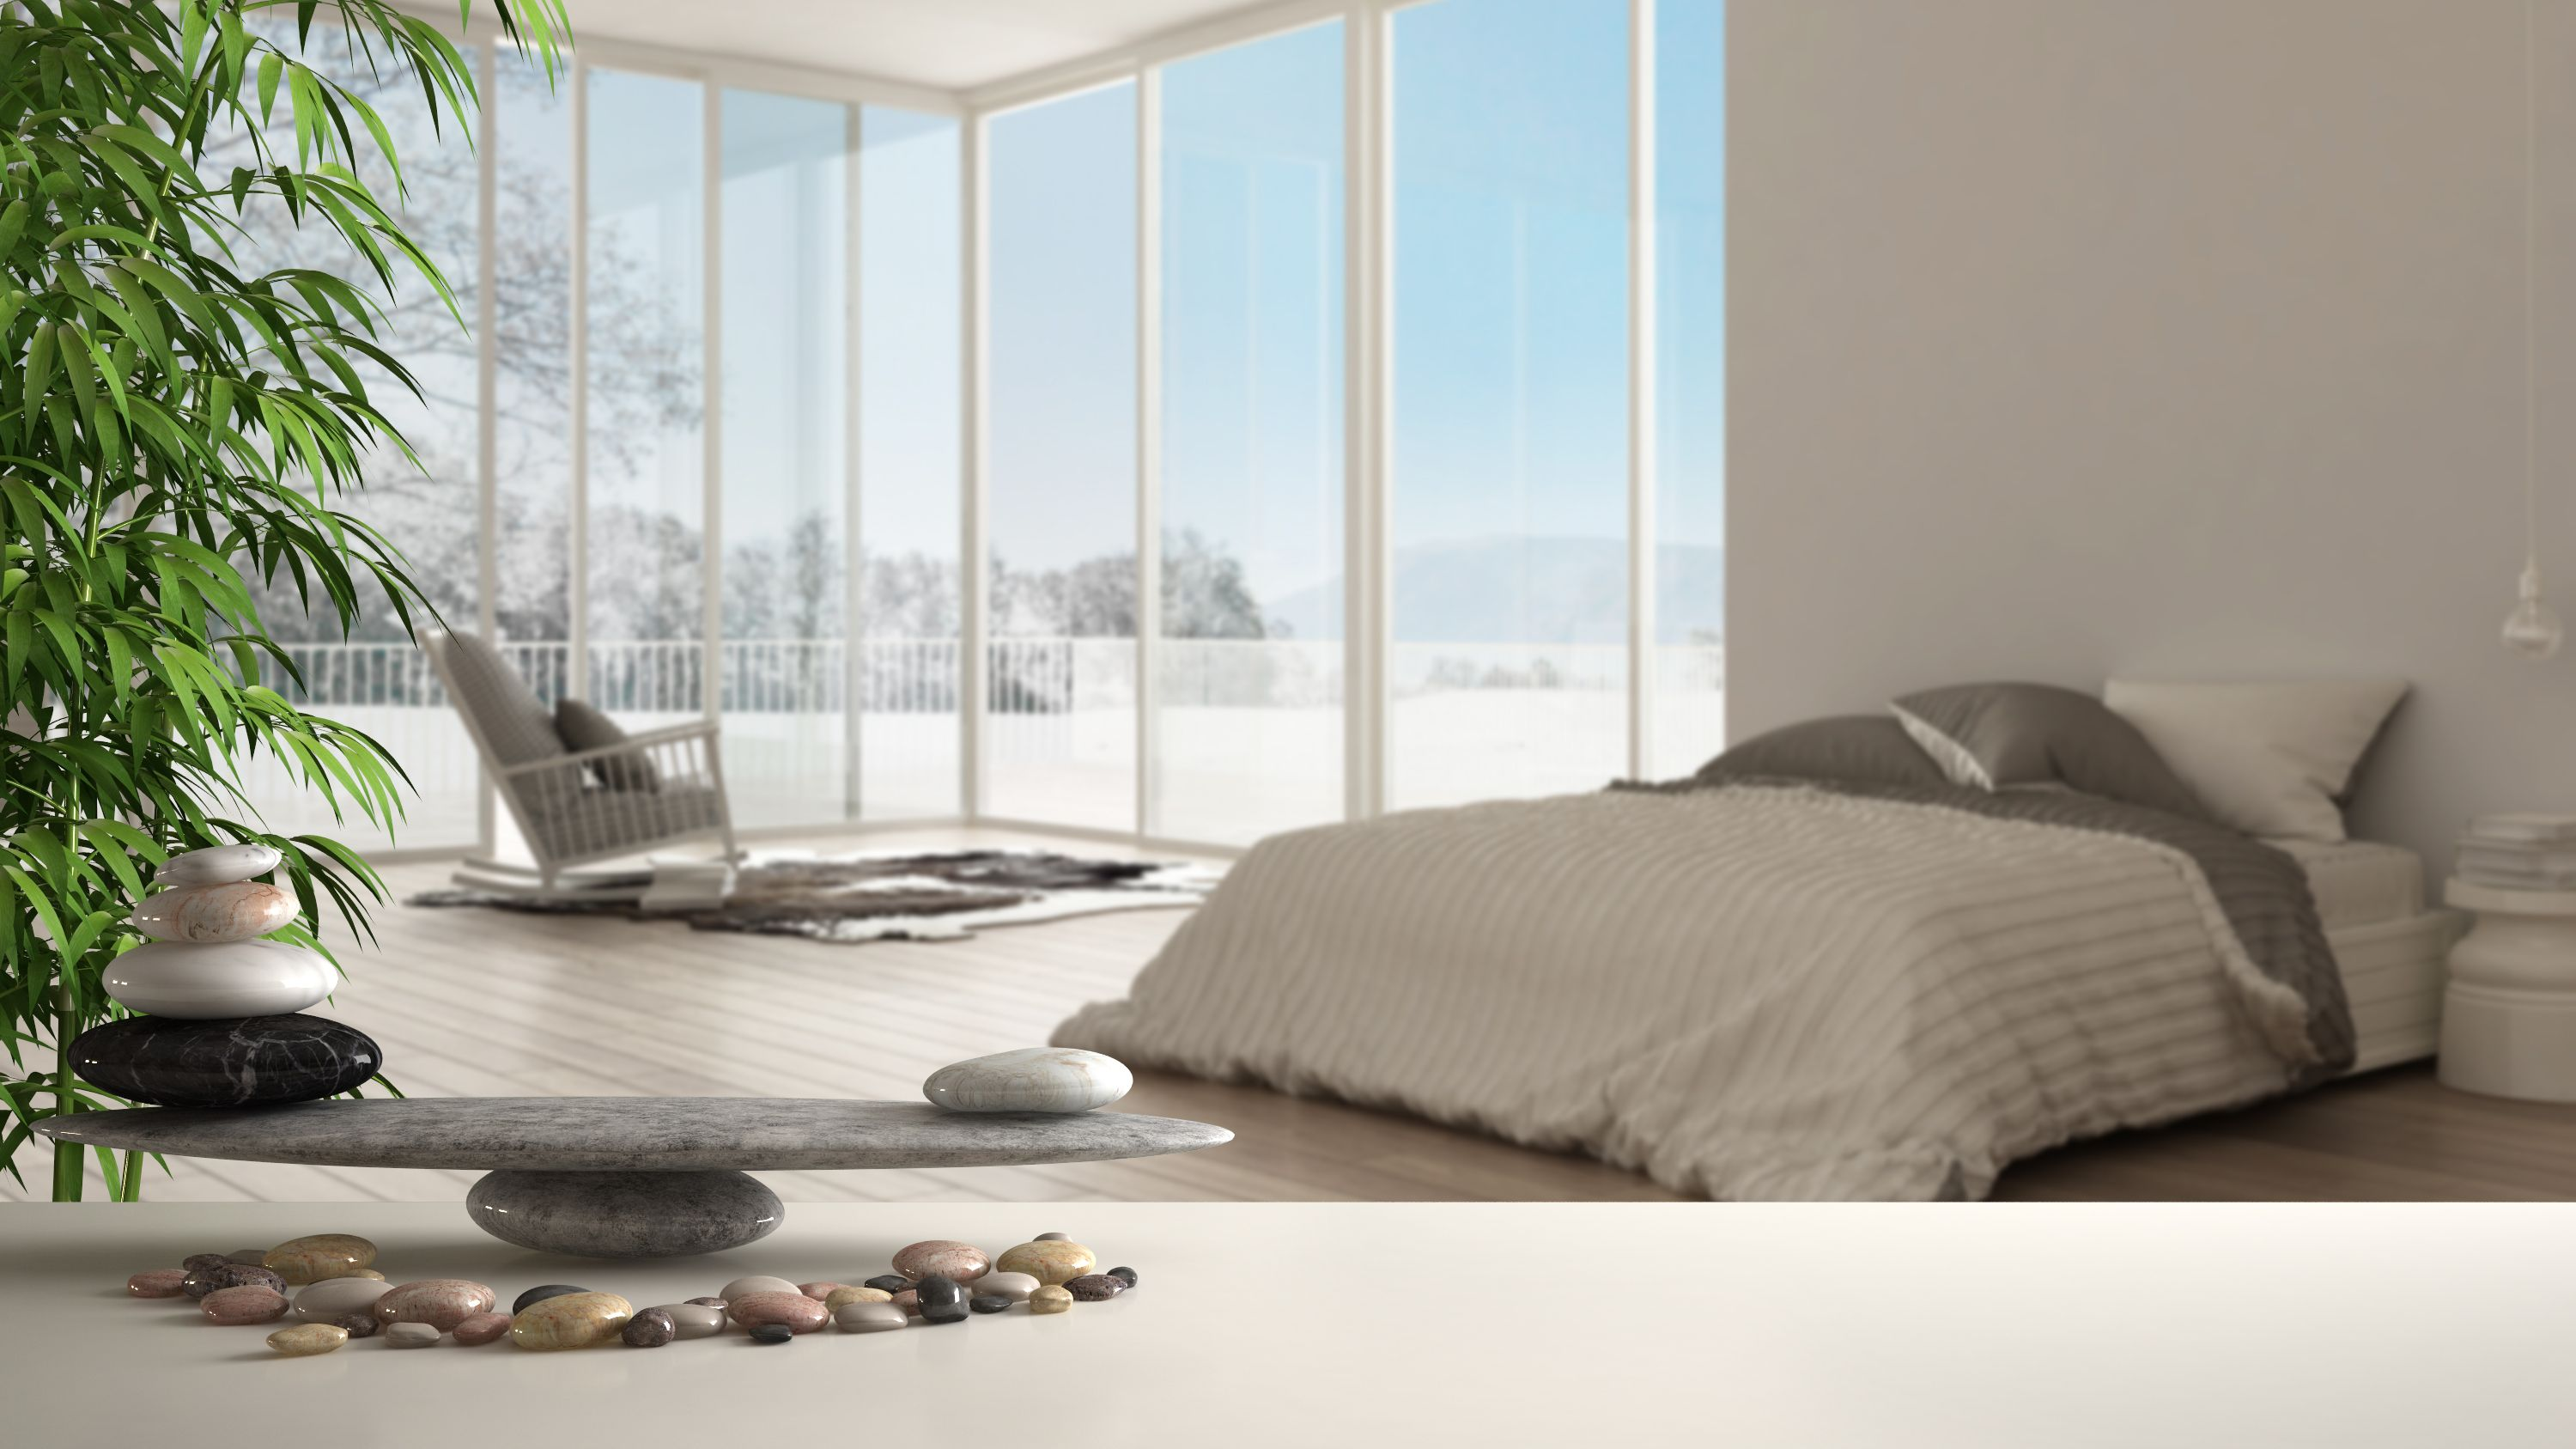 12 Feng Shui Tips to Create the Bedroom of Your Dreams